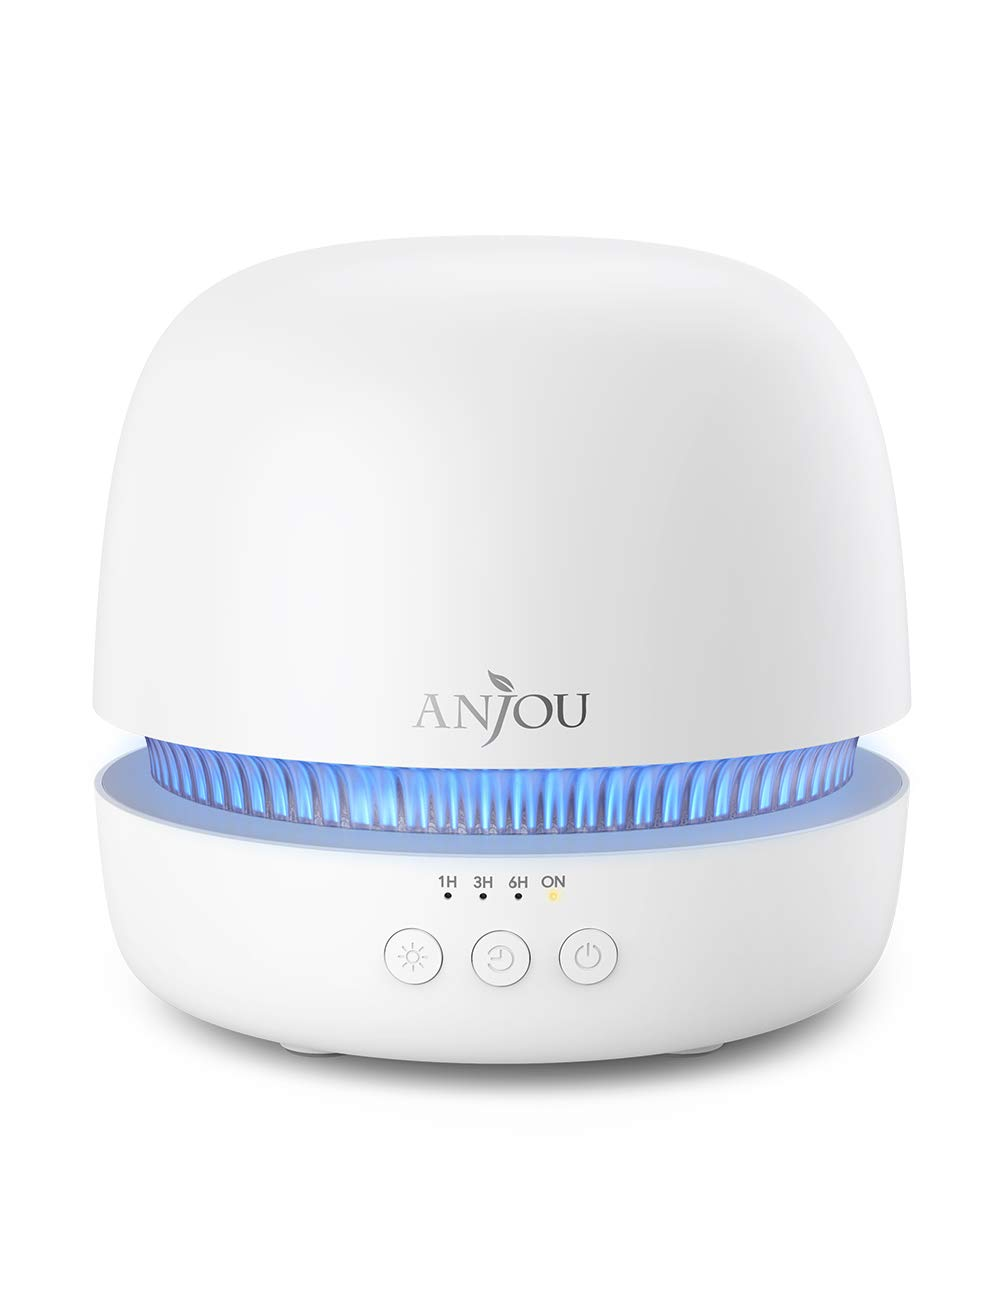 Essential Oil Diffuser, Anjou 300ml Ultrasonic Aroma Diffuser with Continuous Aromatherapy, Whisper-Quiet, 2 Mist Outputs, BPA Free, Waterless Auto Shut-Off, 7 Color Light, Aromatherapy Diffuser